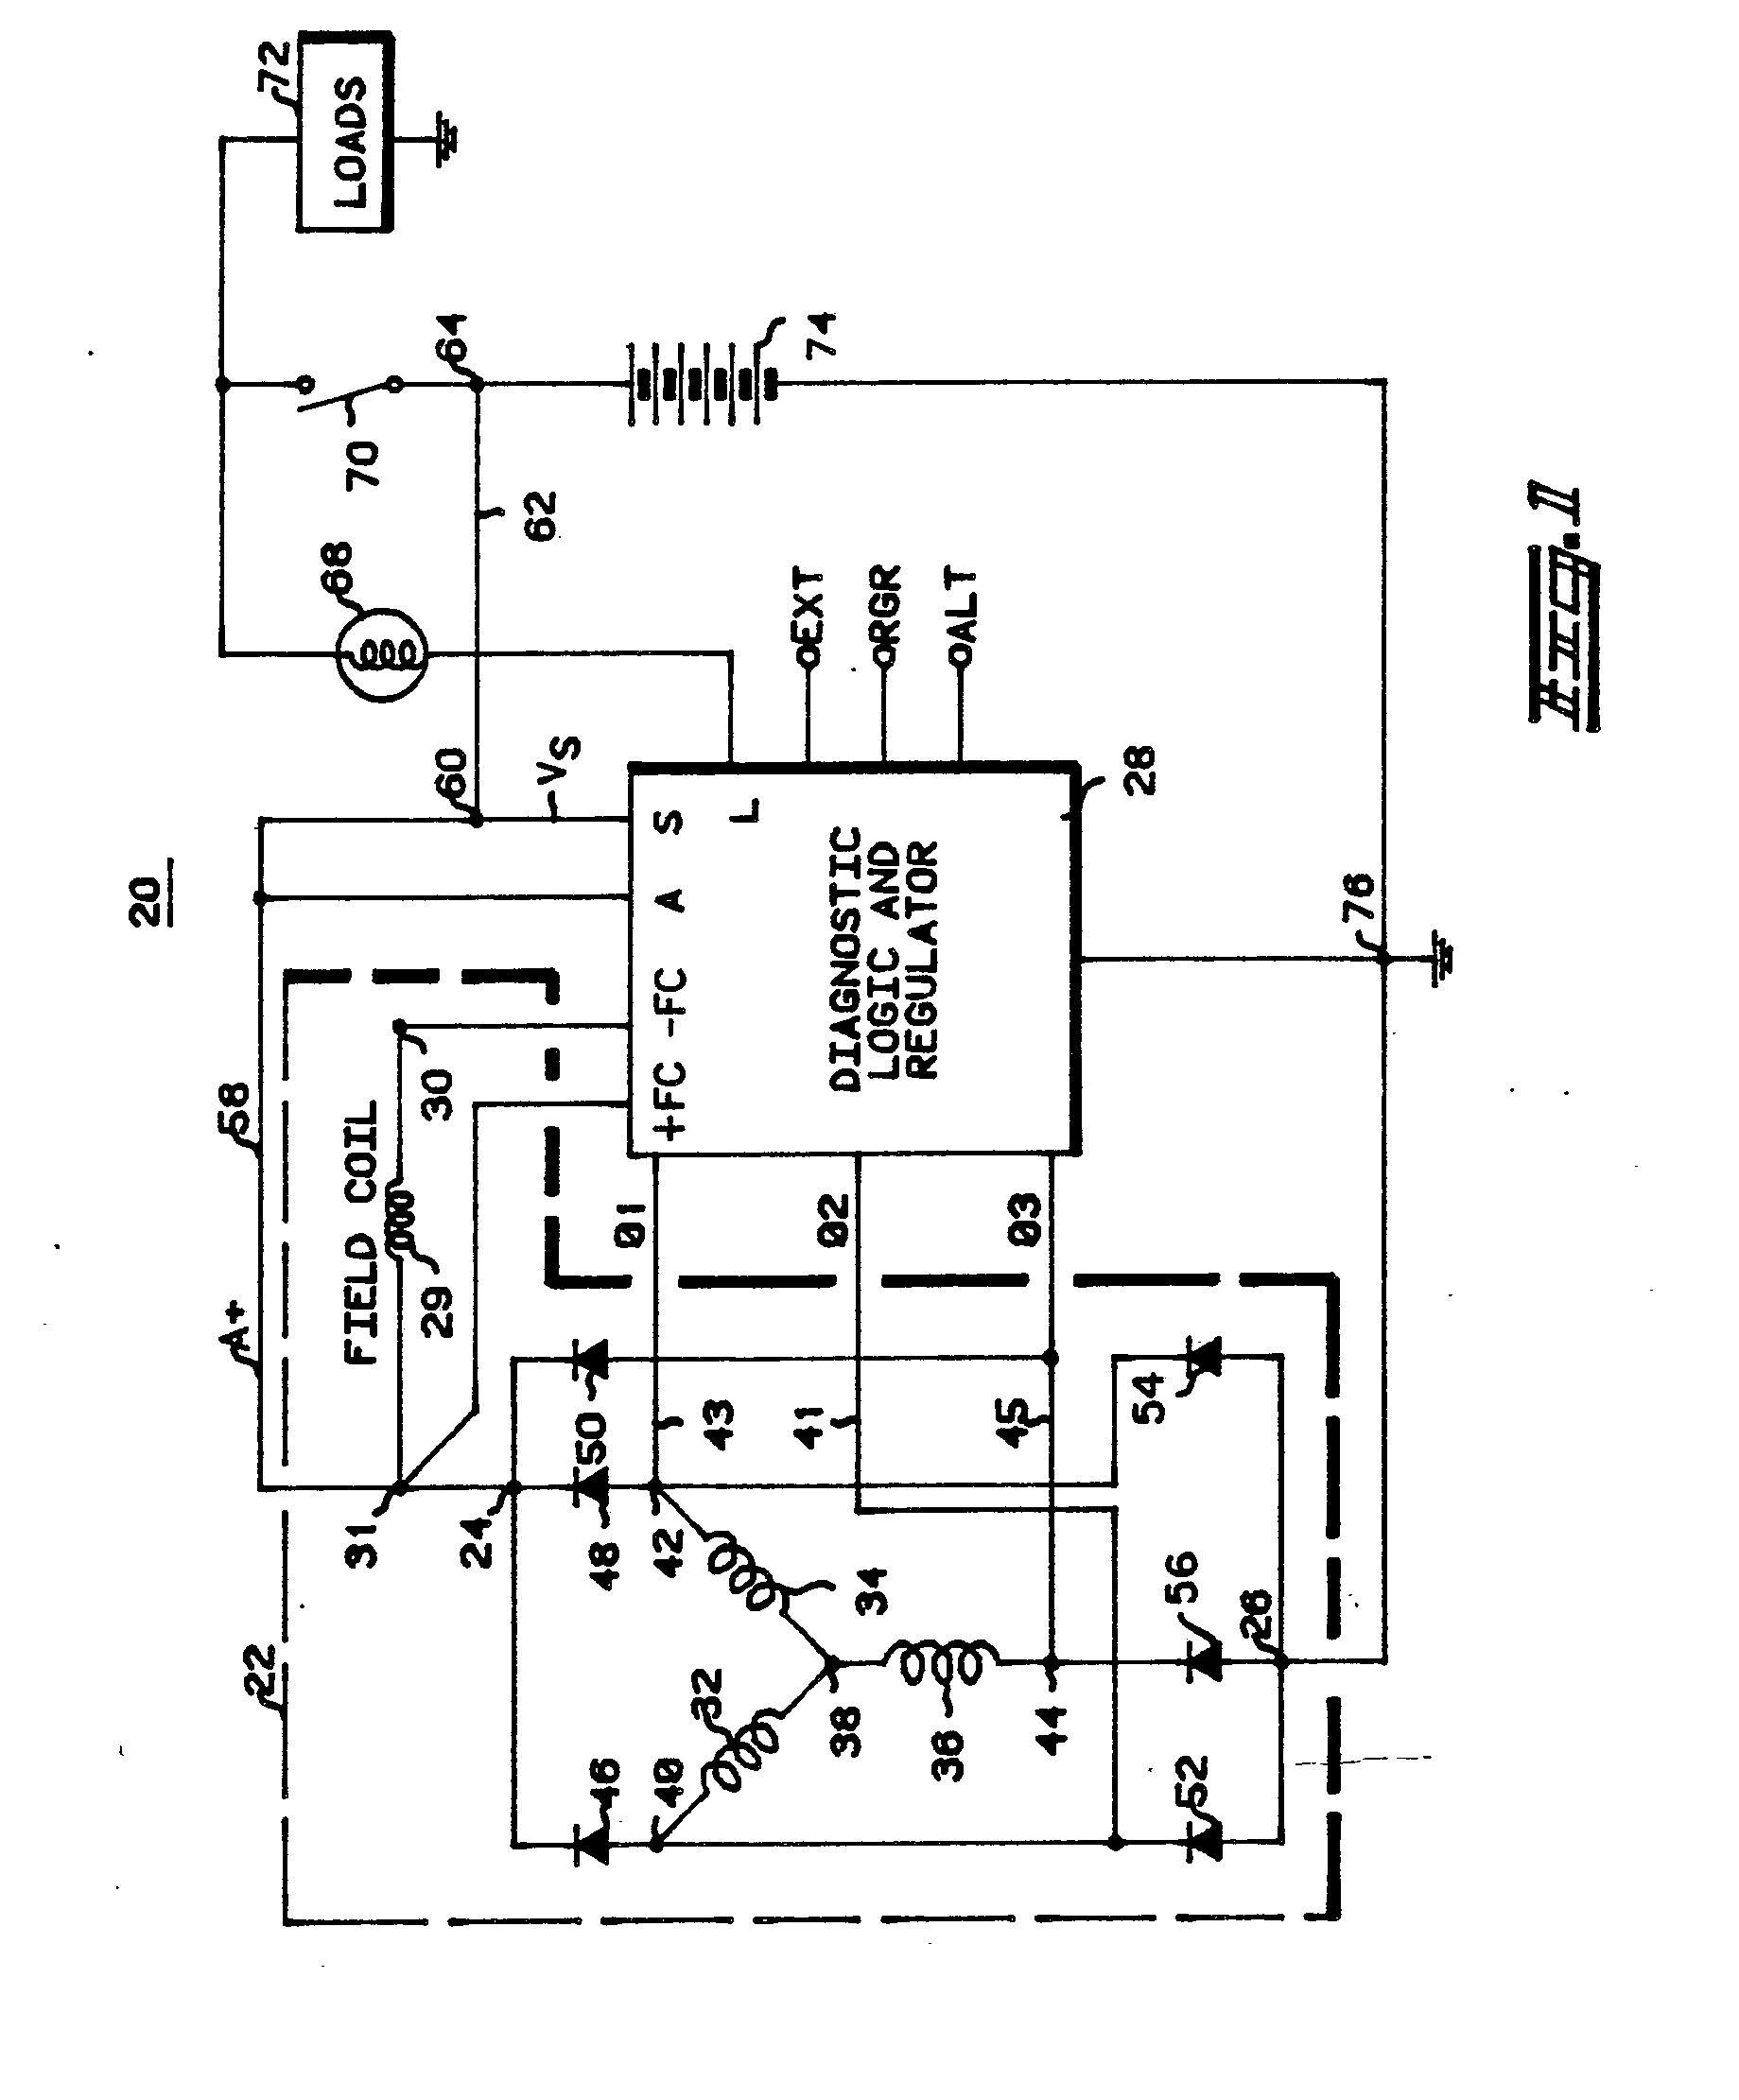 double 30 amp service wiring diagram